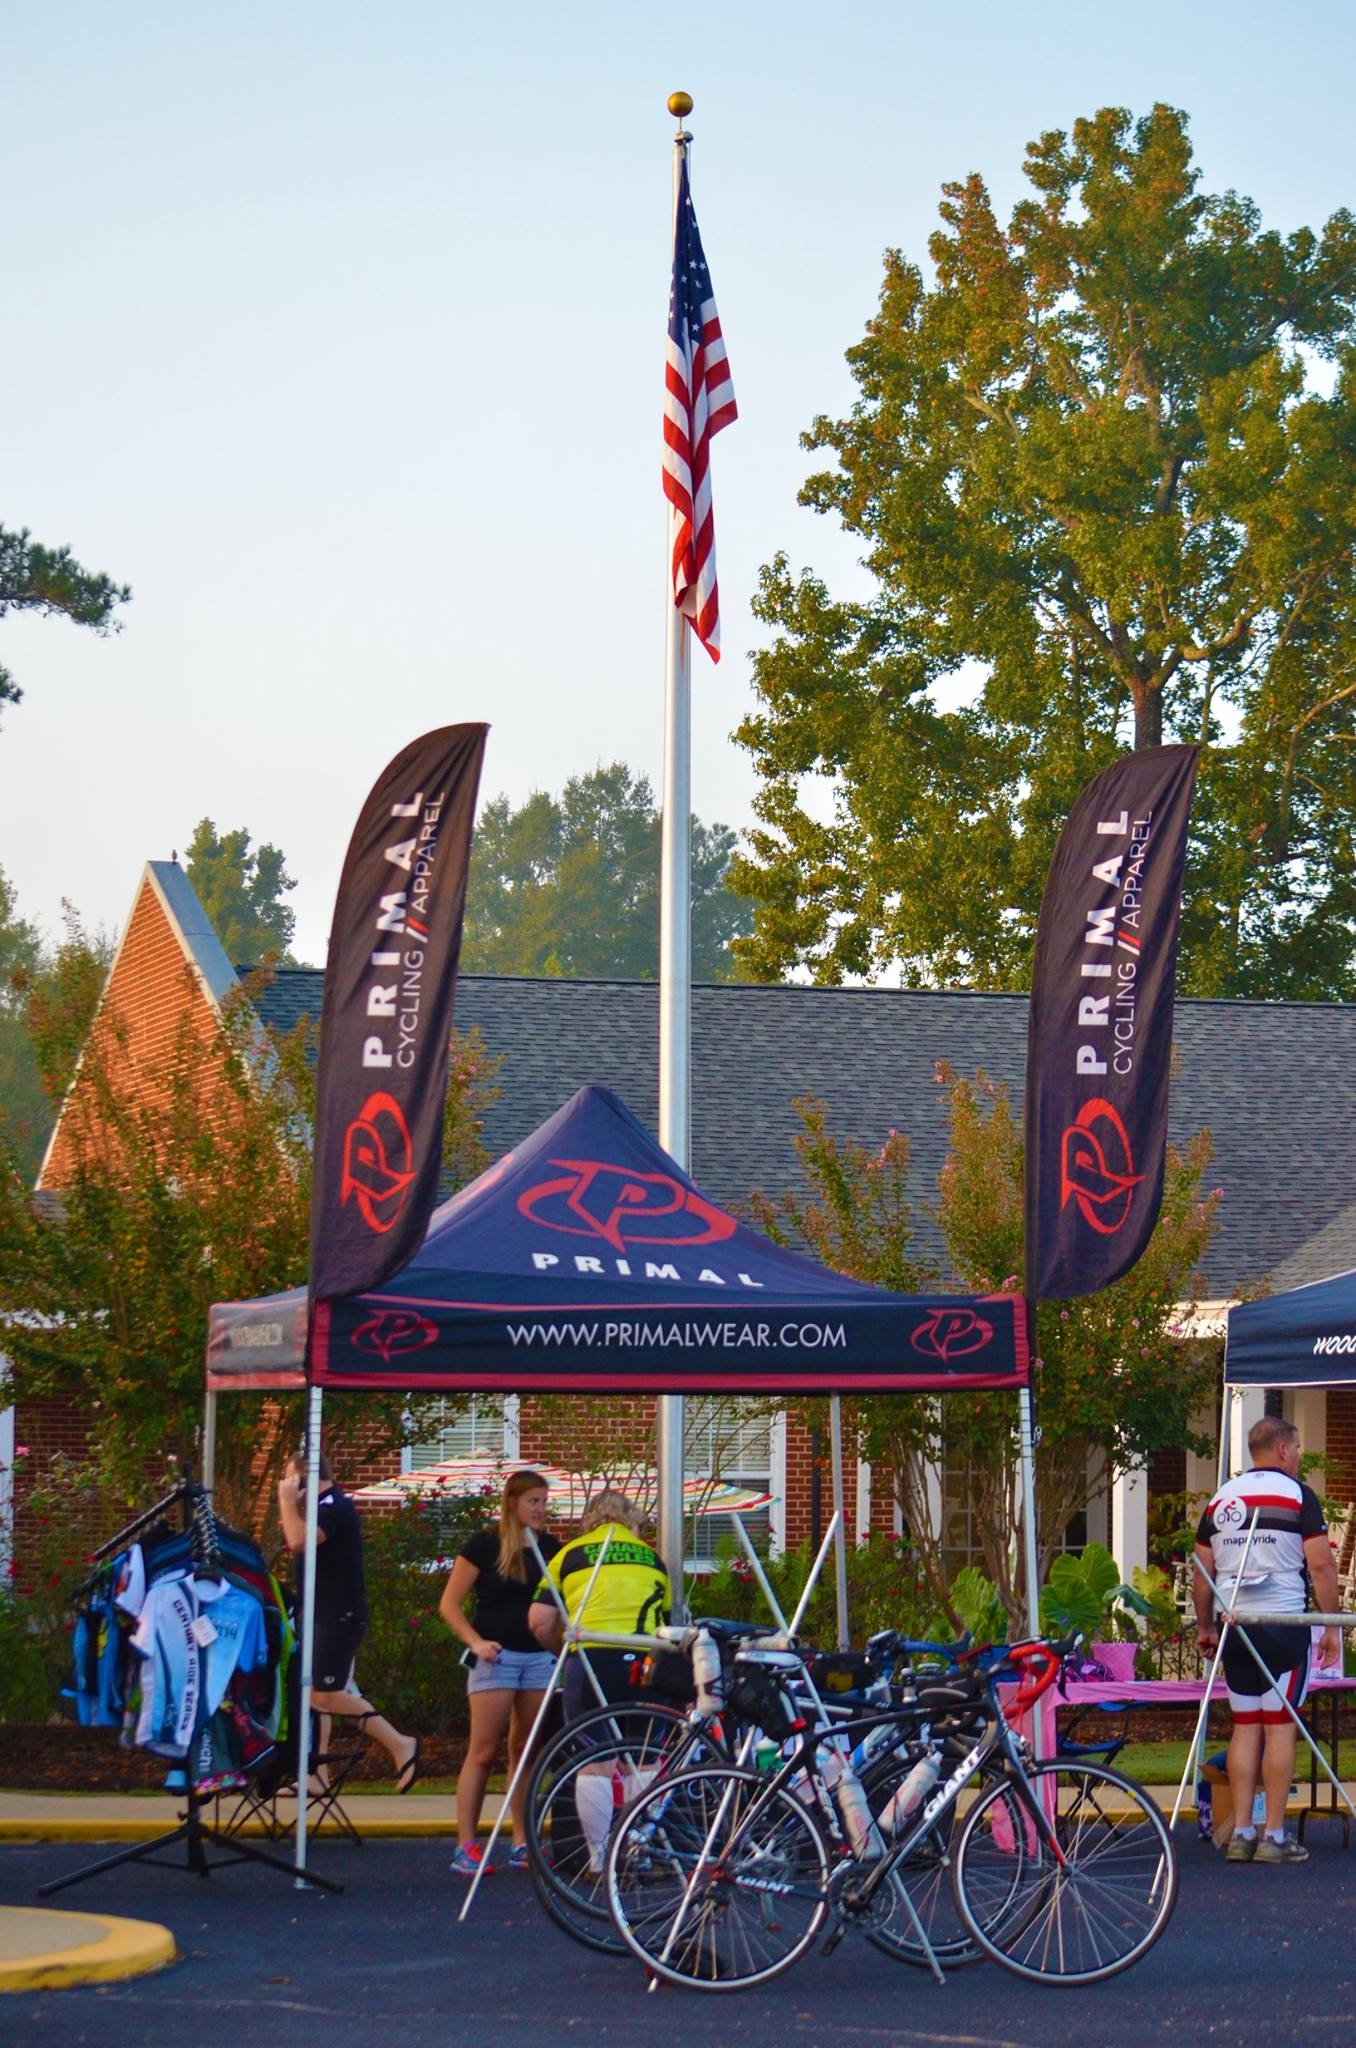 https://alabama-travel.s3.amazonaws.com/partners-uploads/photo/image/558abf2457c47fbbca00009d/primal_at_glassner_autumn_challenge_with_us_flag.jpg